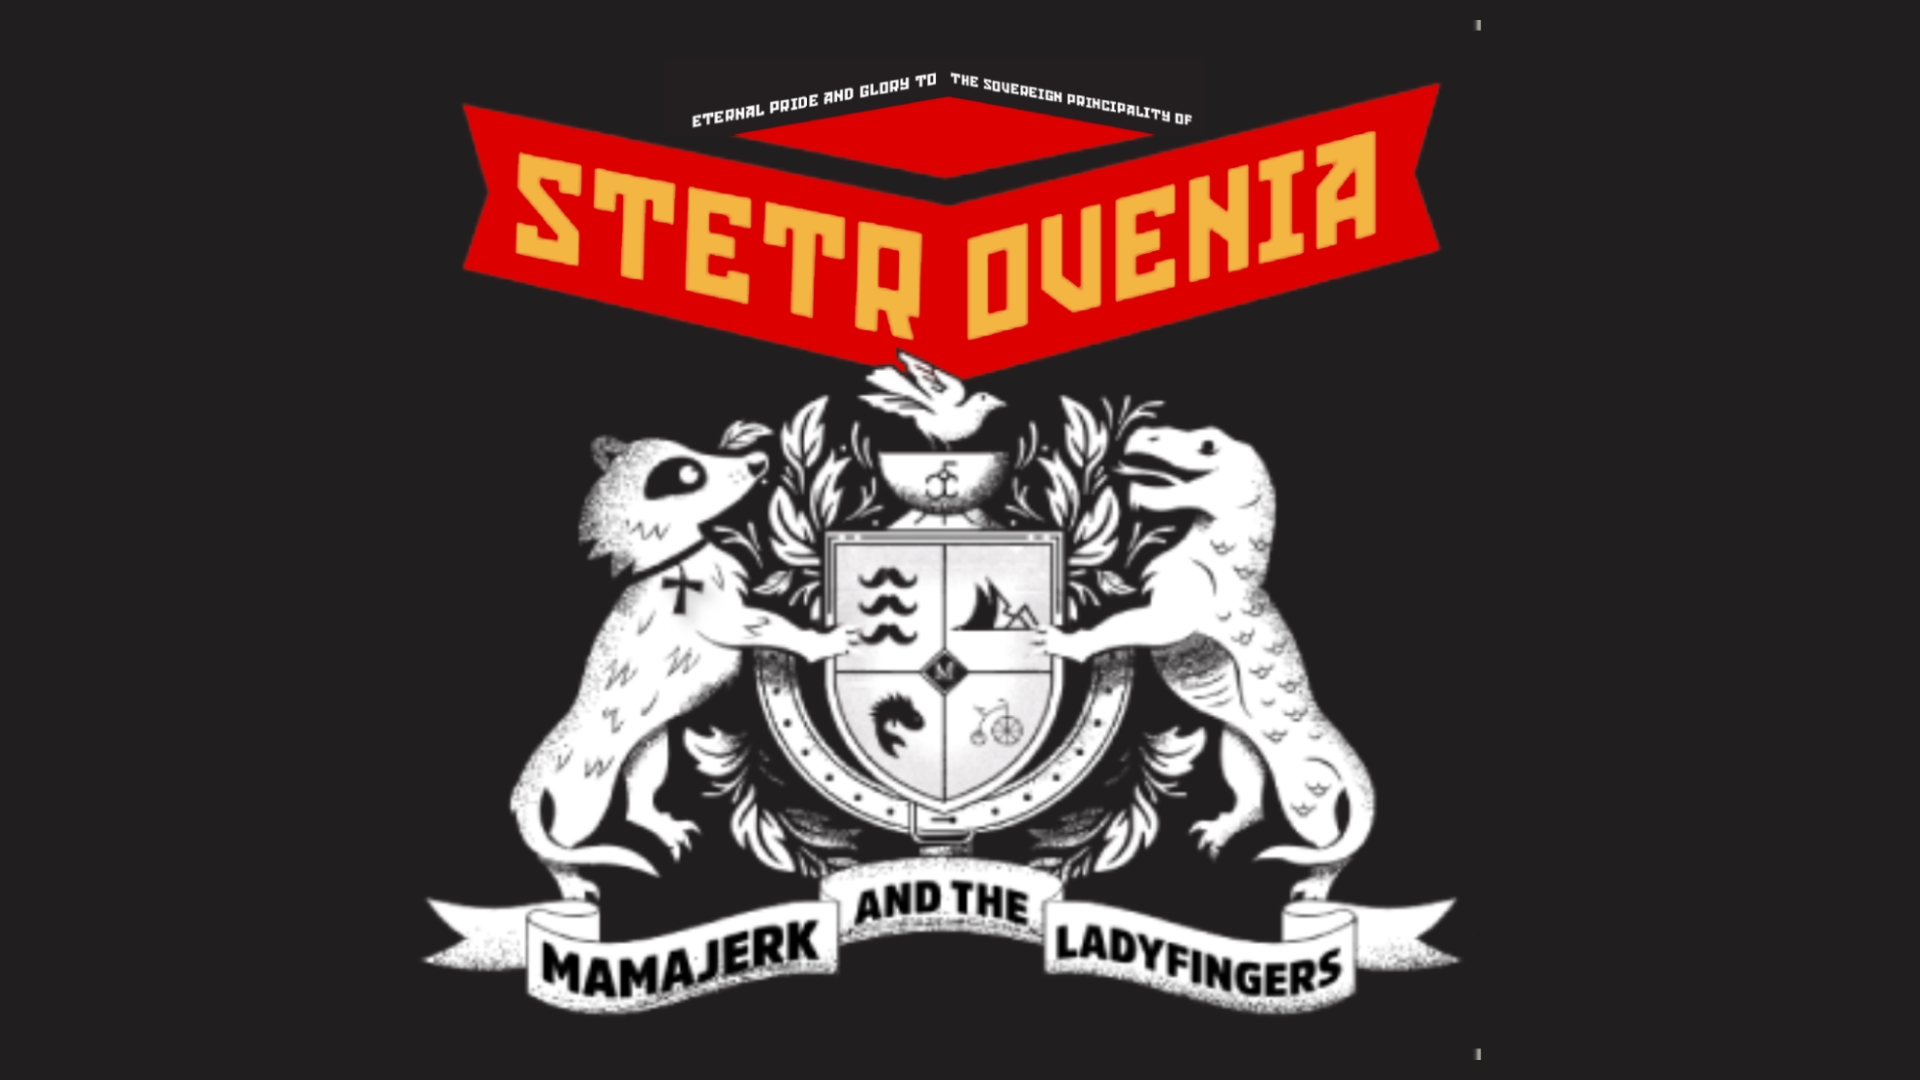 Event Poster For Mama Jerk & the LadyFingers: Stetrovenia (EP and Comic Book Launch)